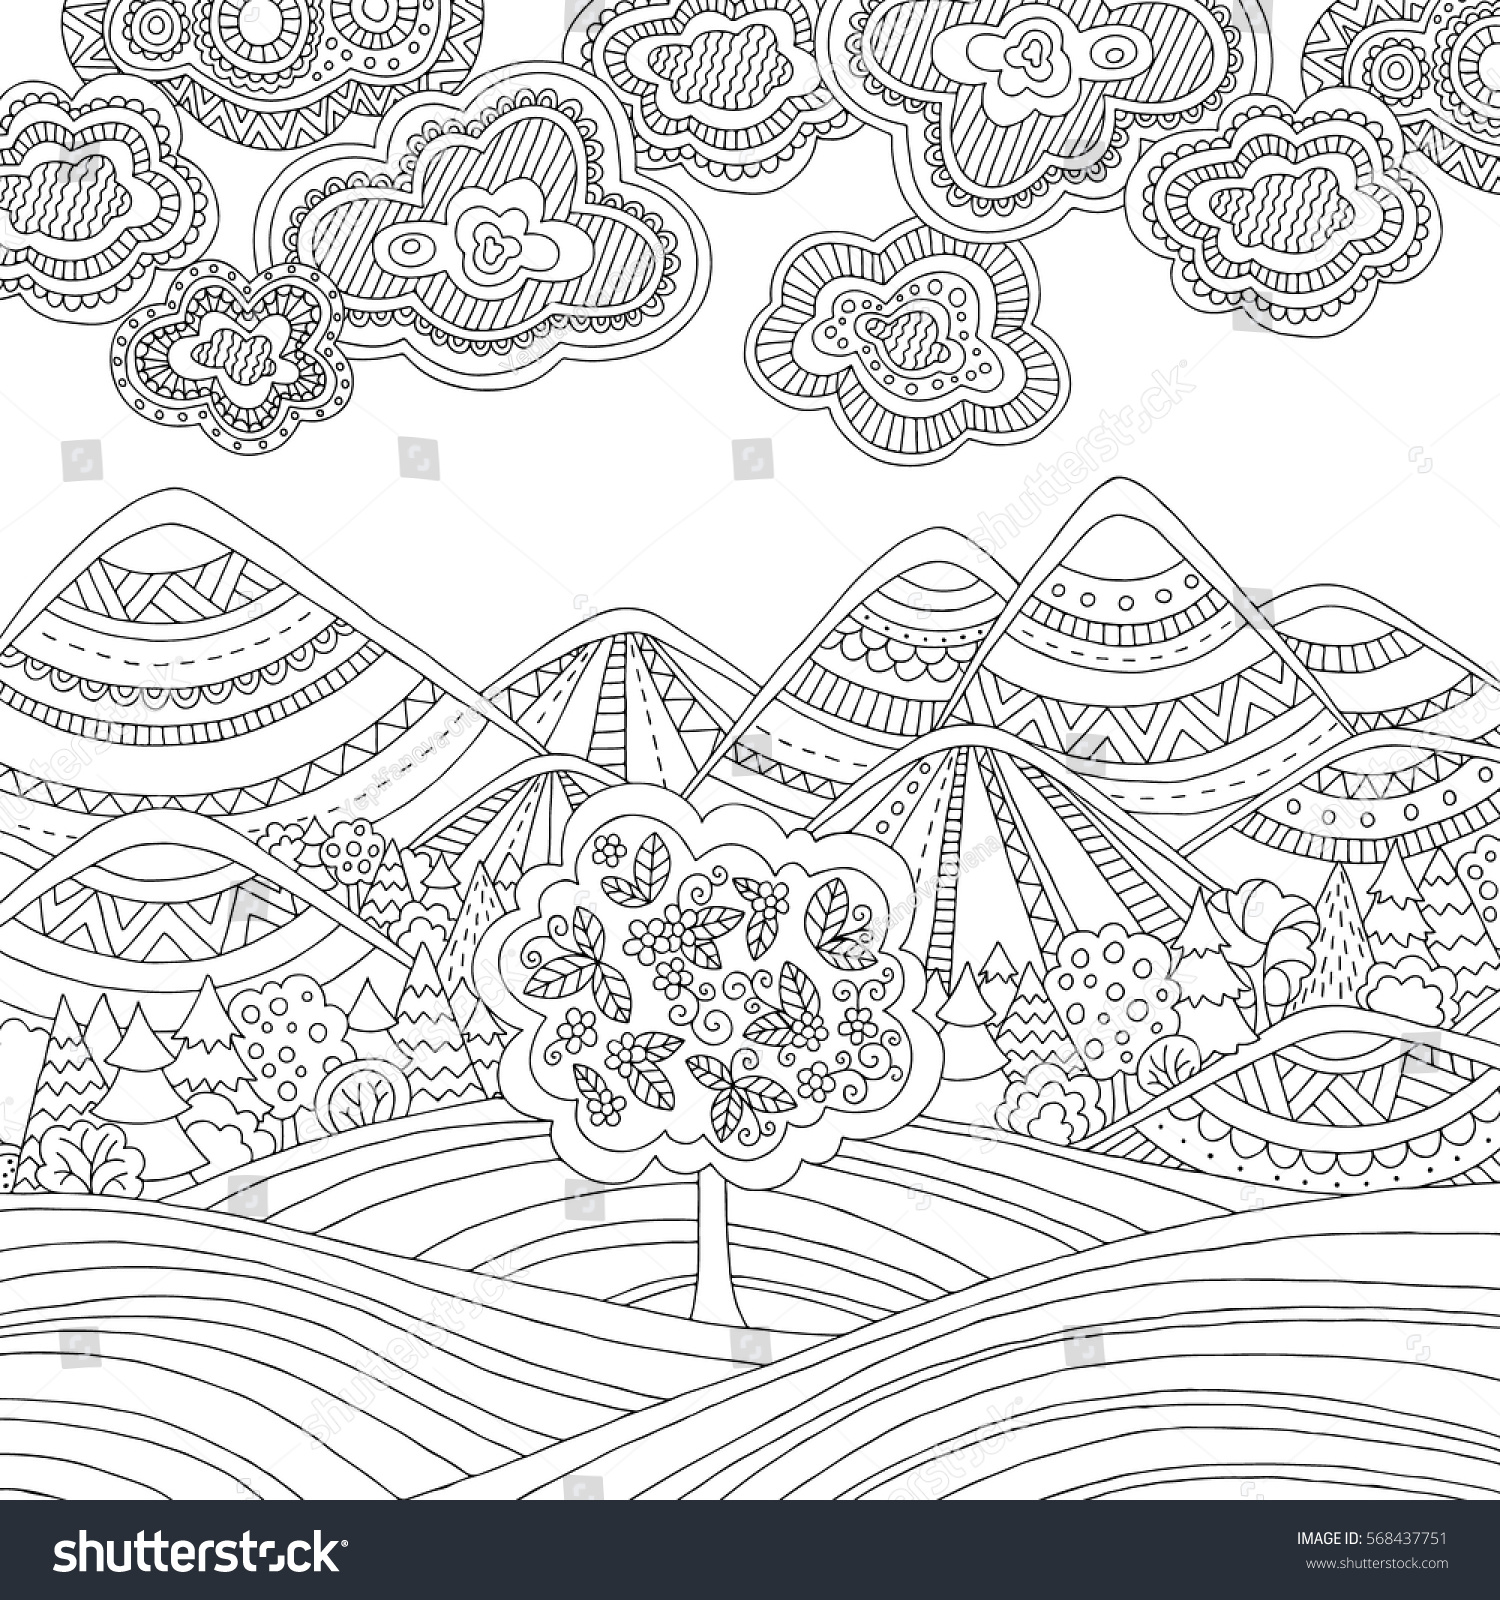 Doodle Art Colouring Book